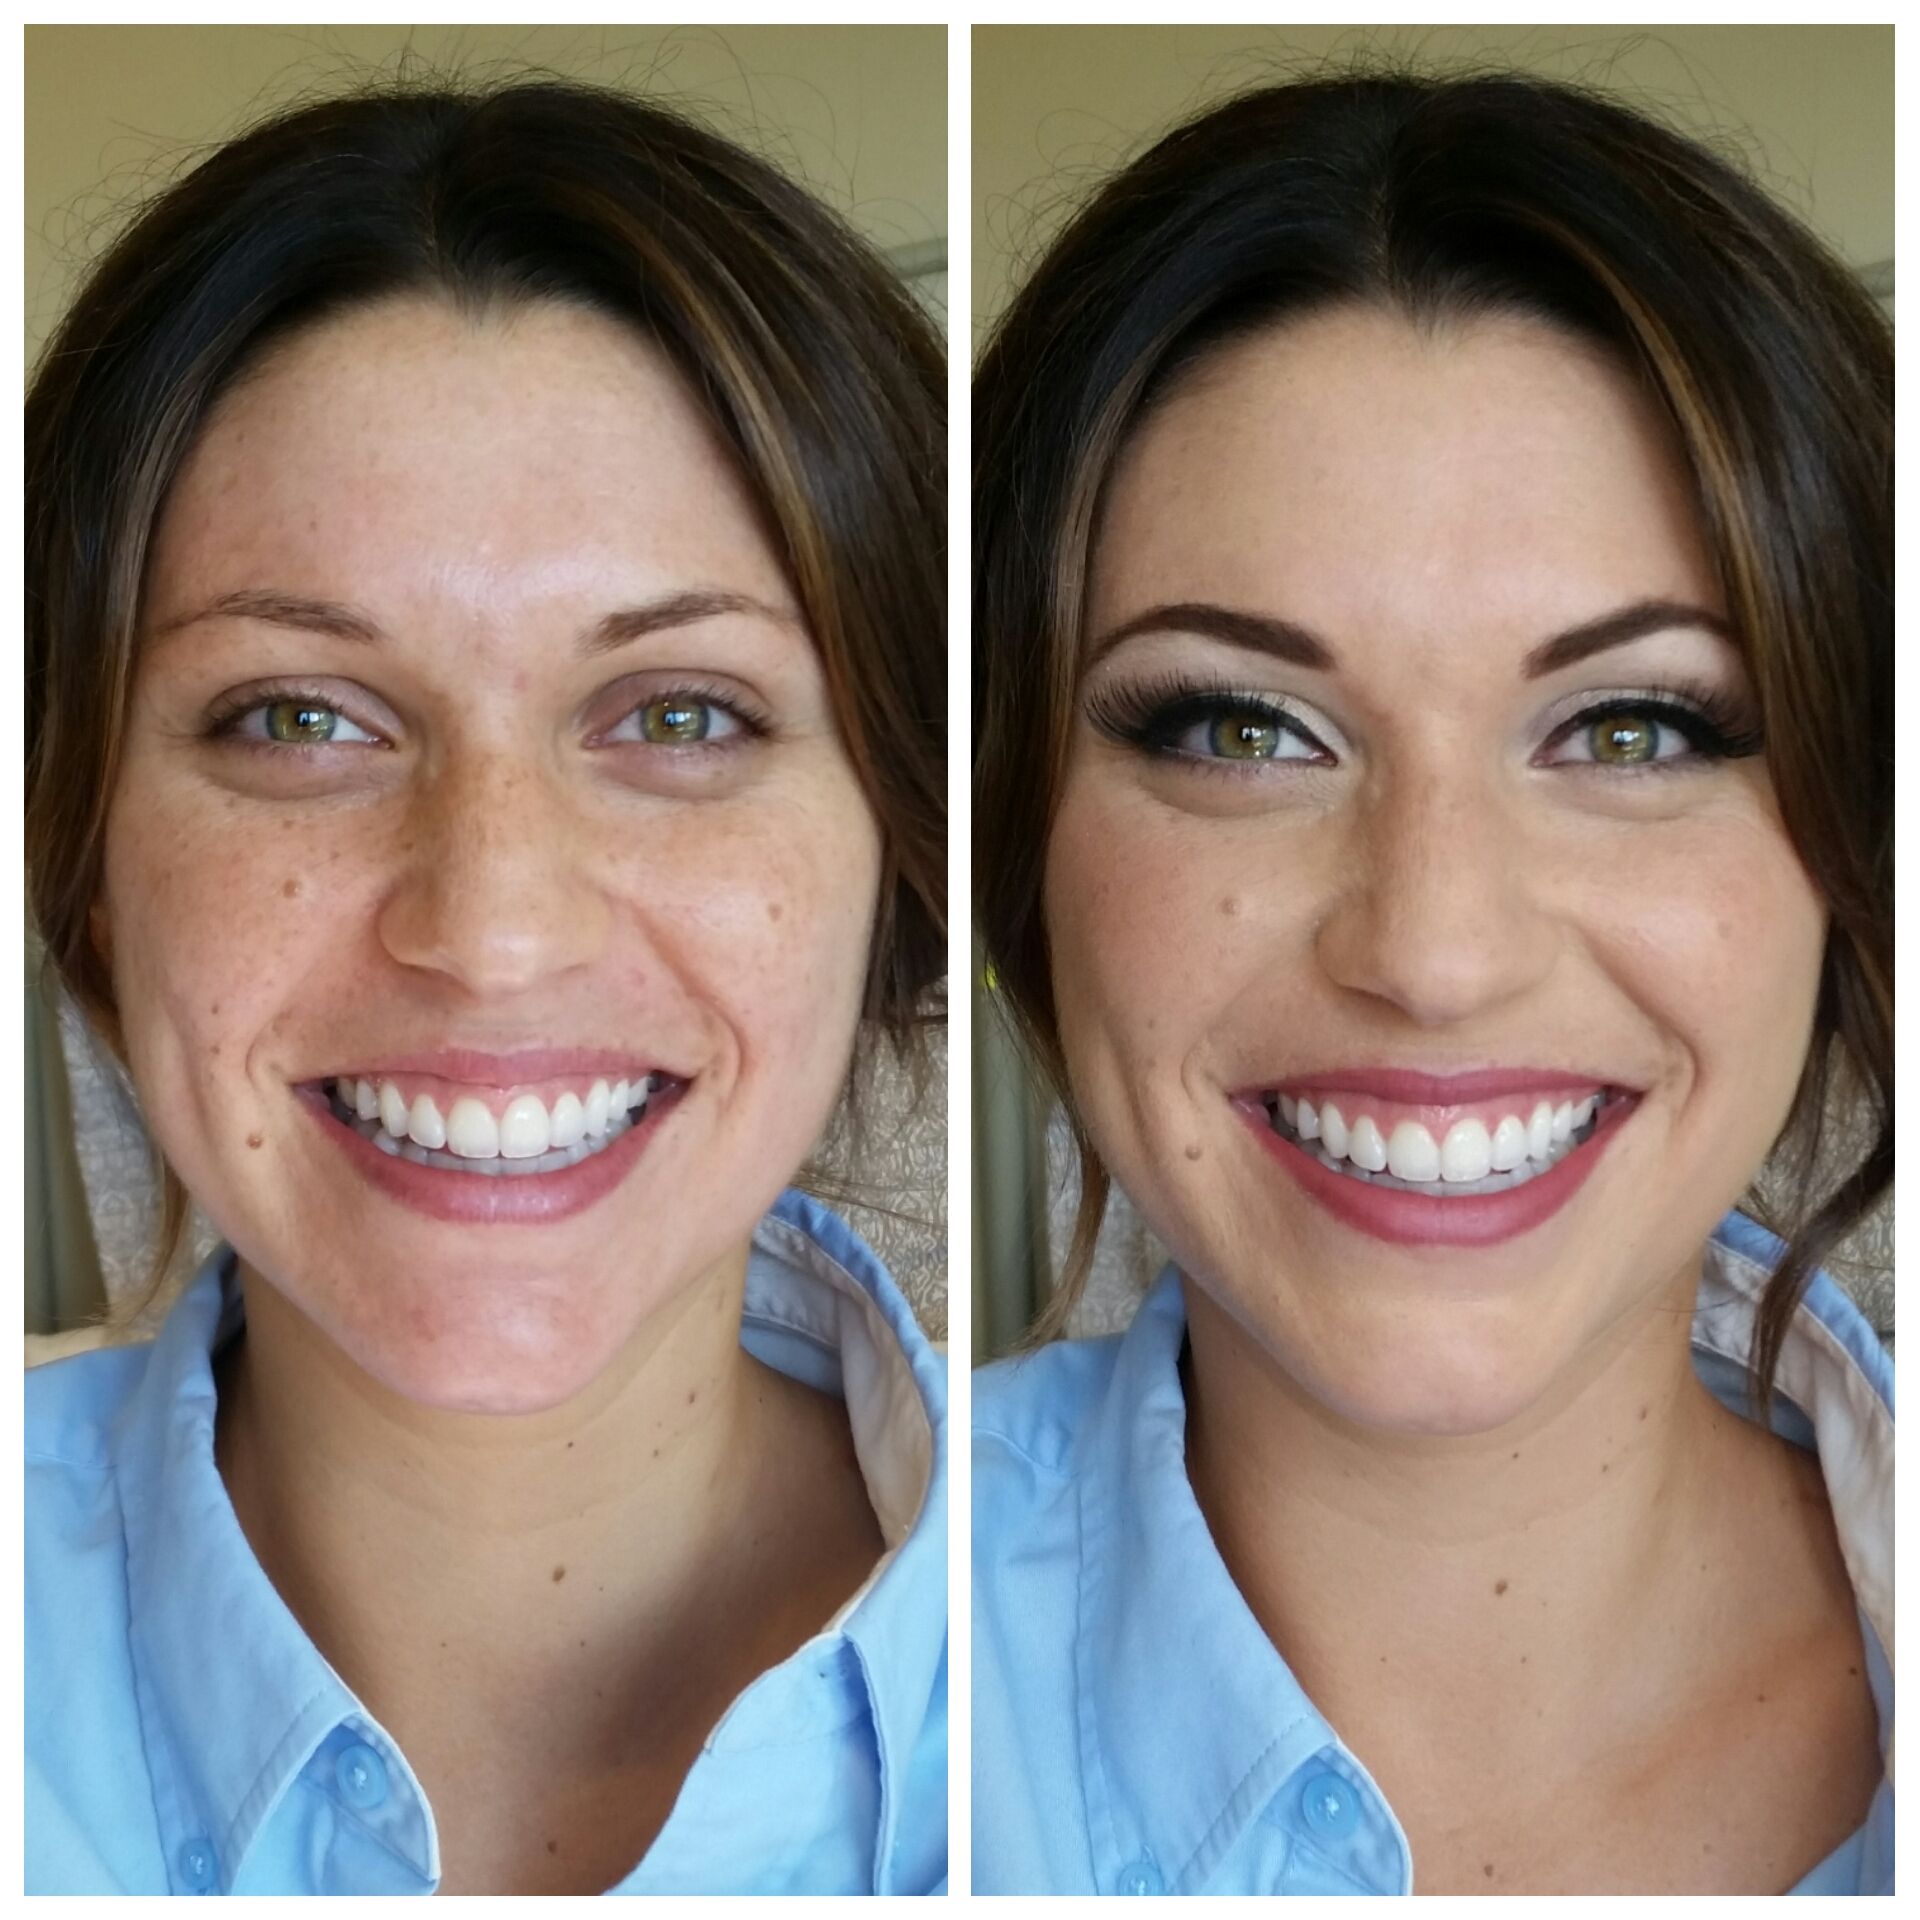 Ultra Sophisticated Makeup Application with Winged Liner by Makeup Artist.jpg